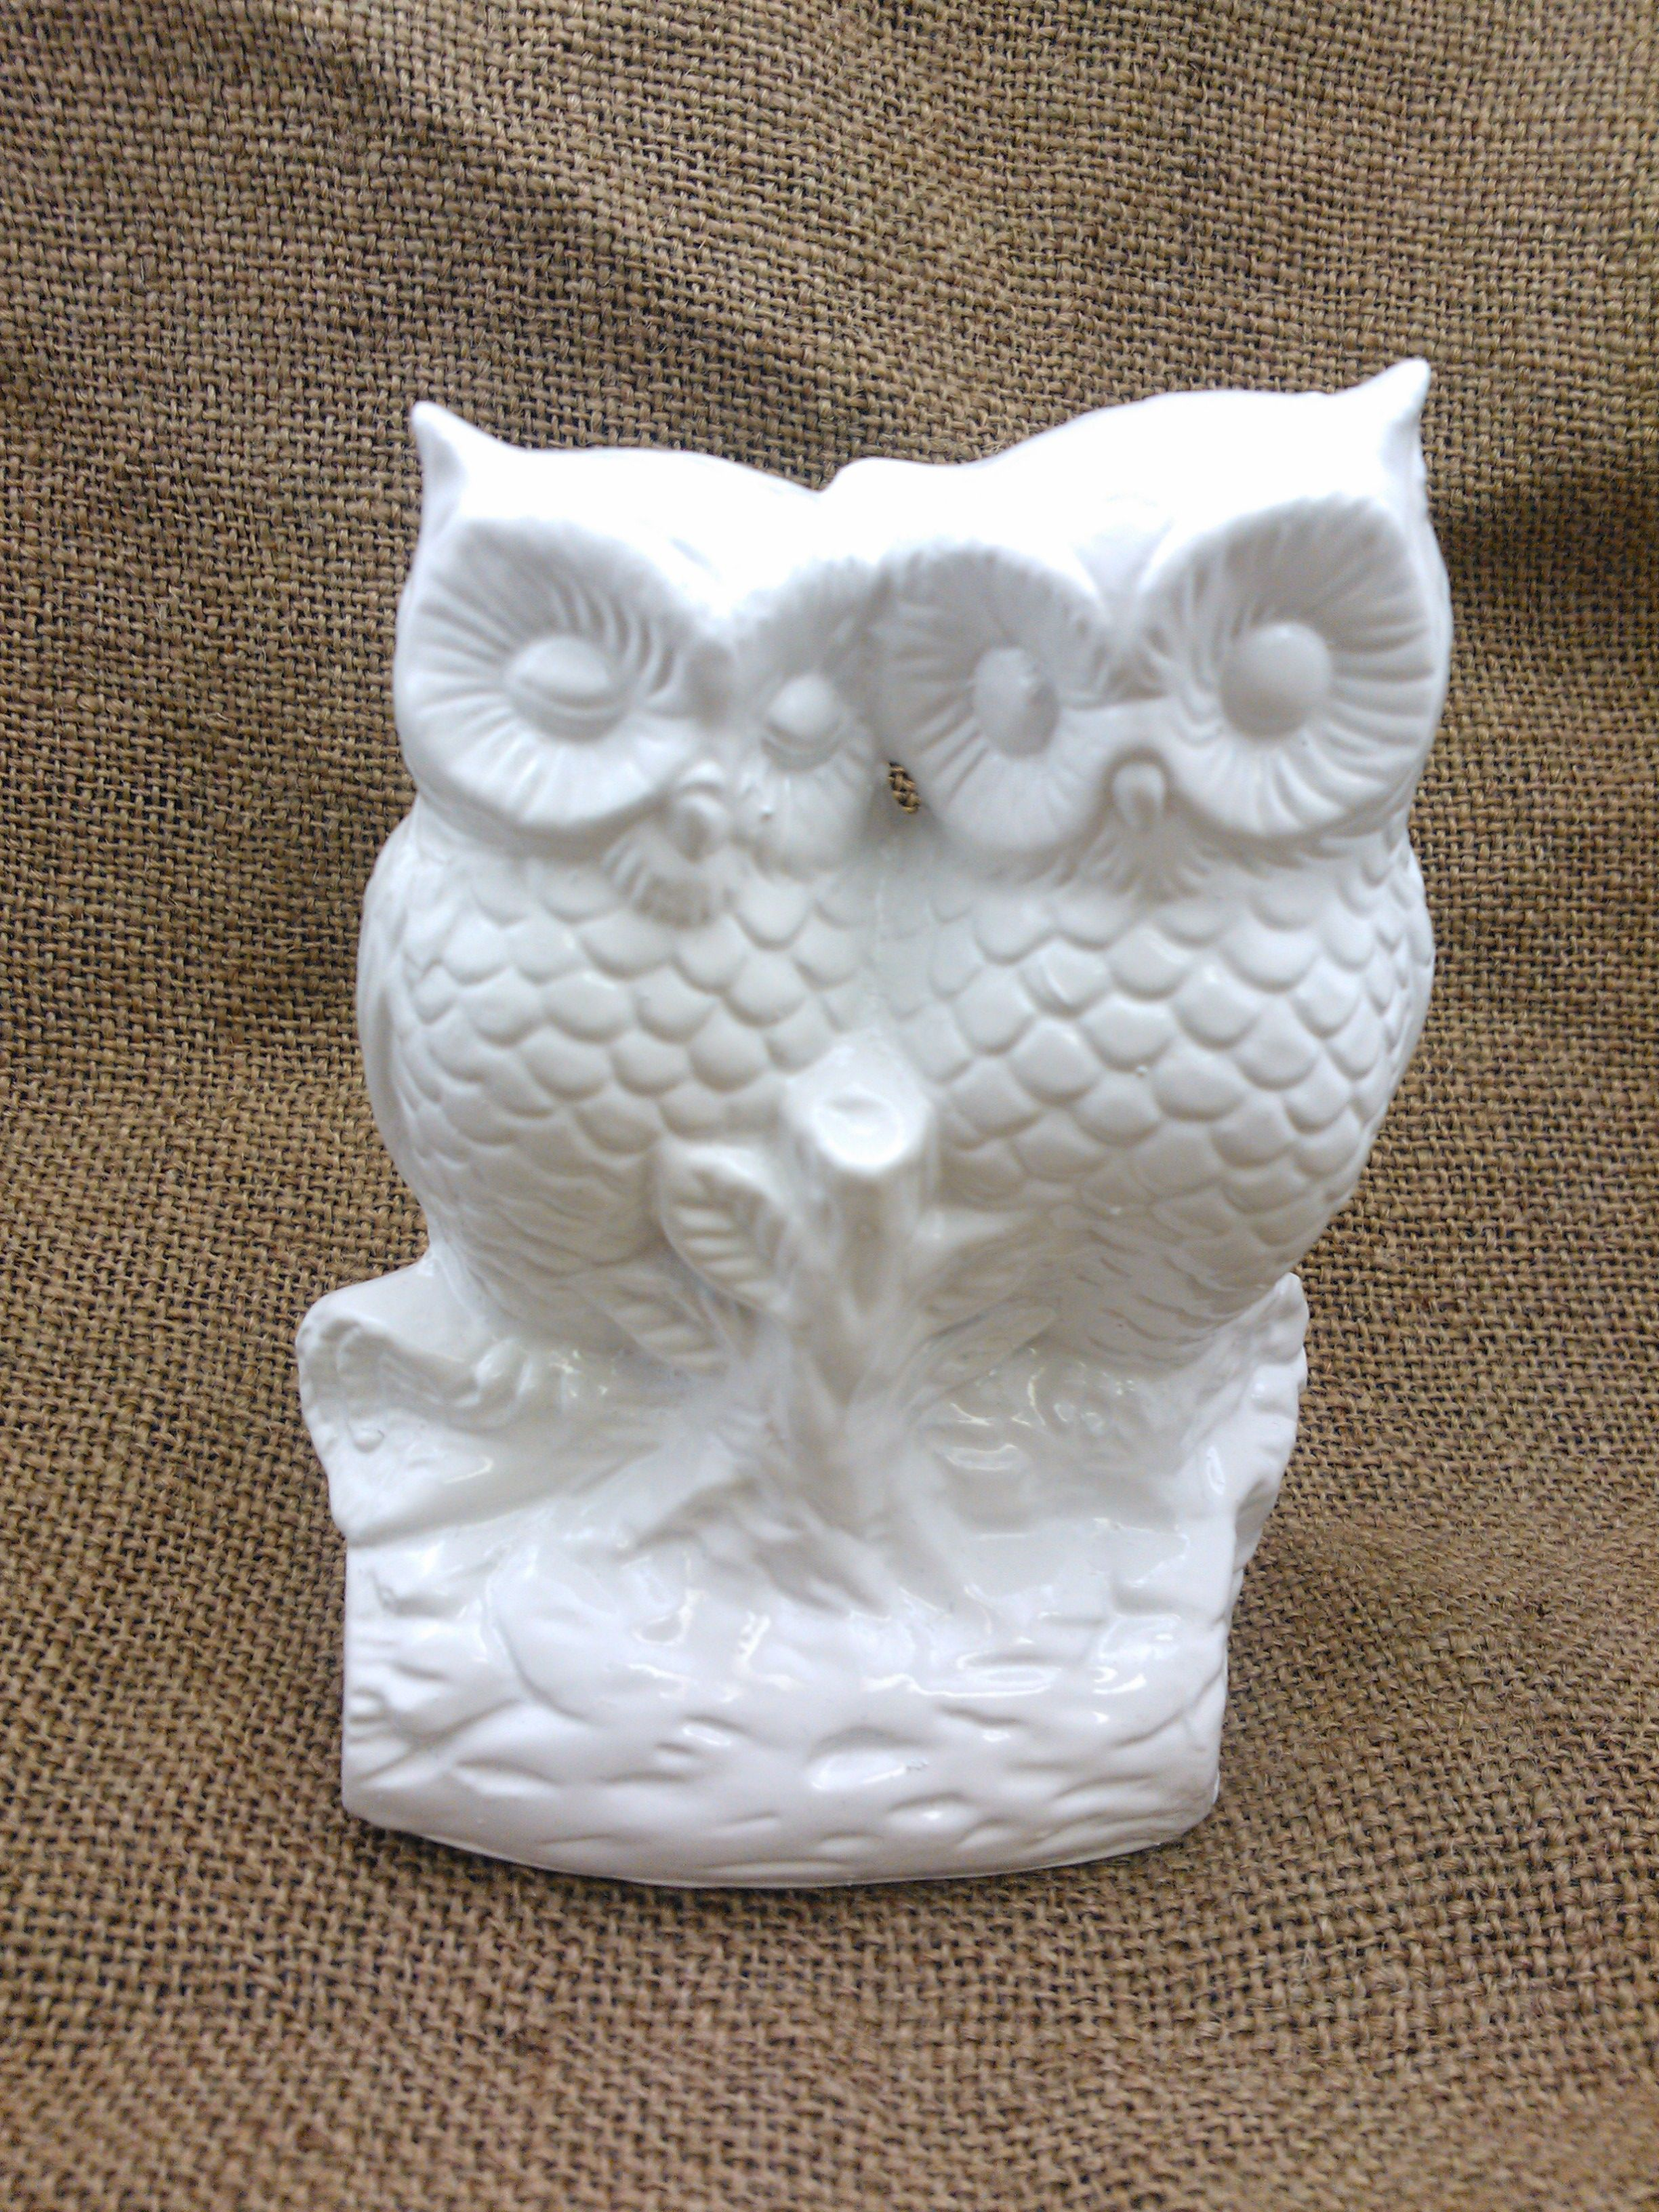 Diy Owl Wedding Cake Topper Favours Use An Old Knick Knack As A Upcycledwedding